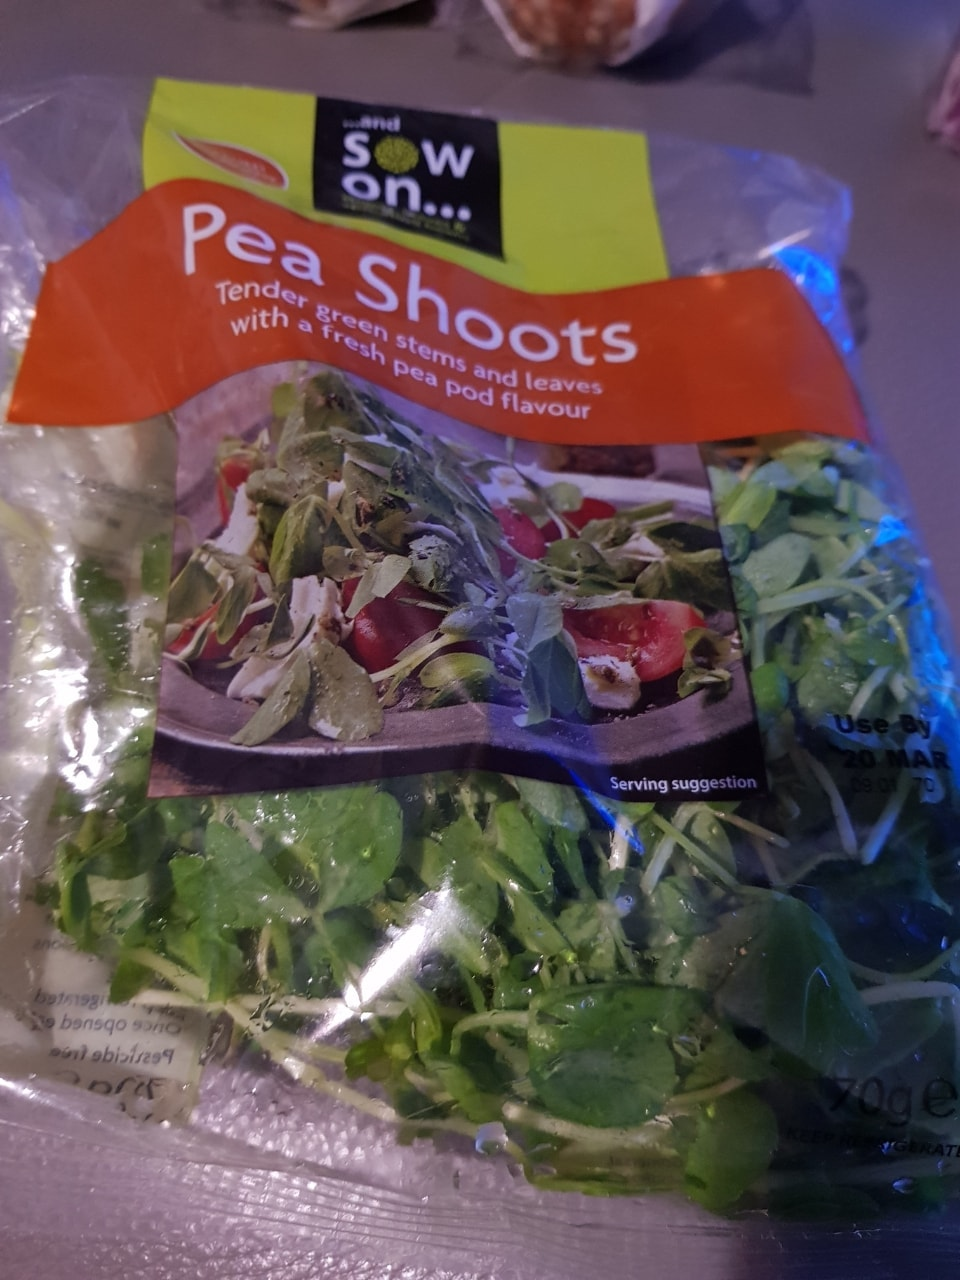 Pea shoots- must collect tonight before 11pm